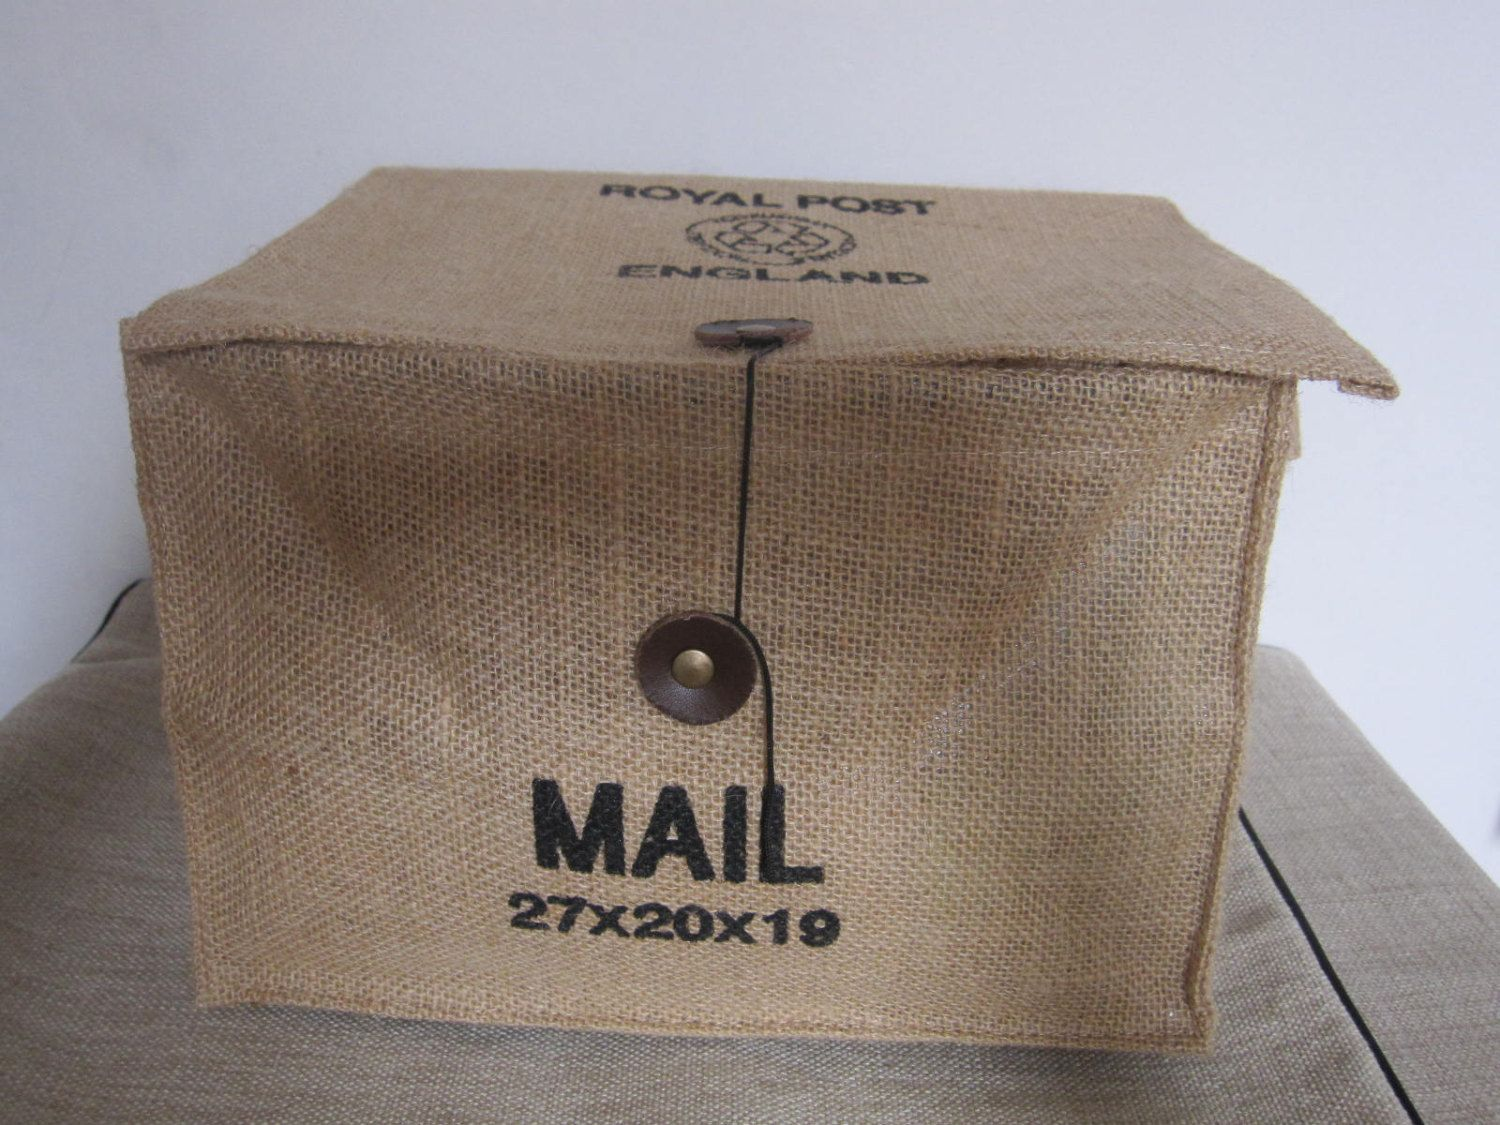 Mail storage 100% natural eco friendly linen Storage bag /Roral  Post England mail storage.